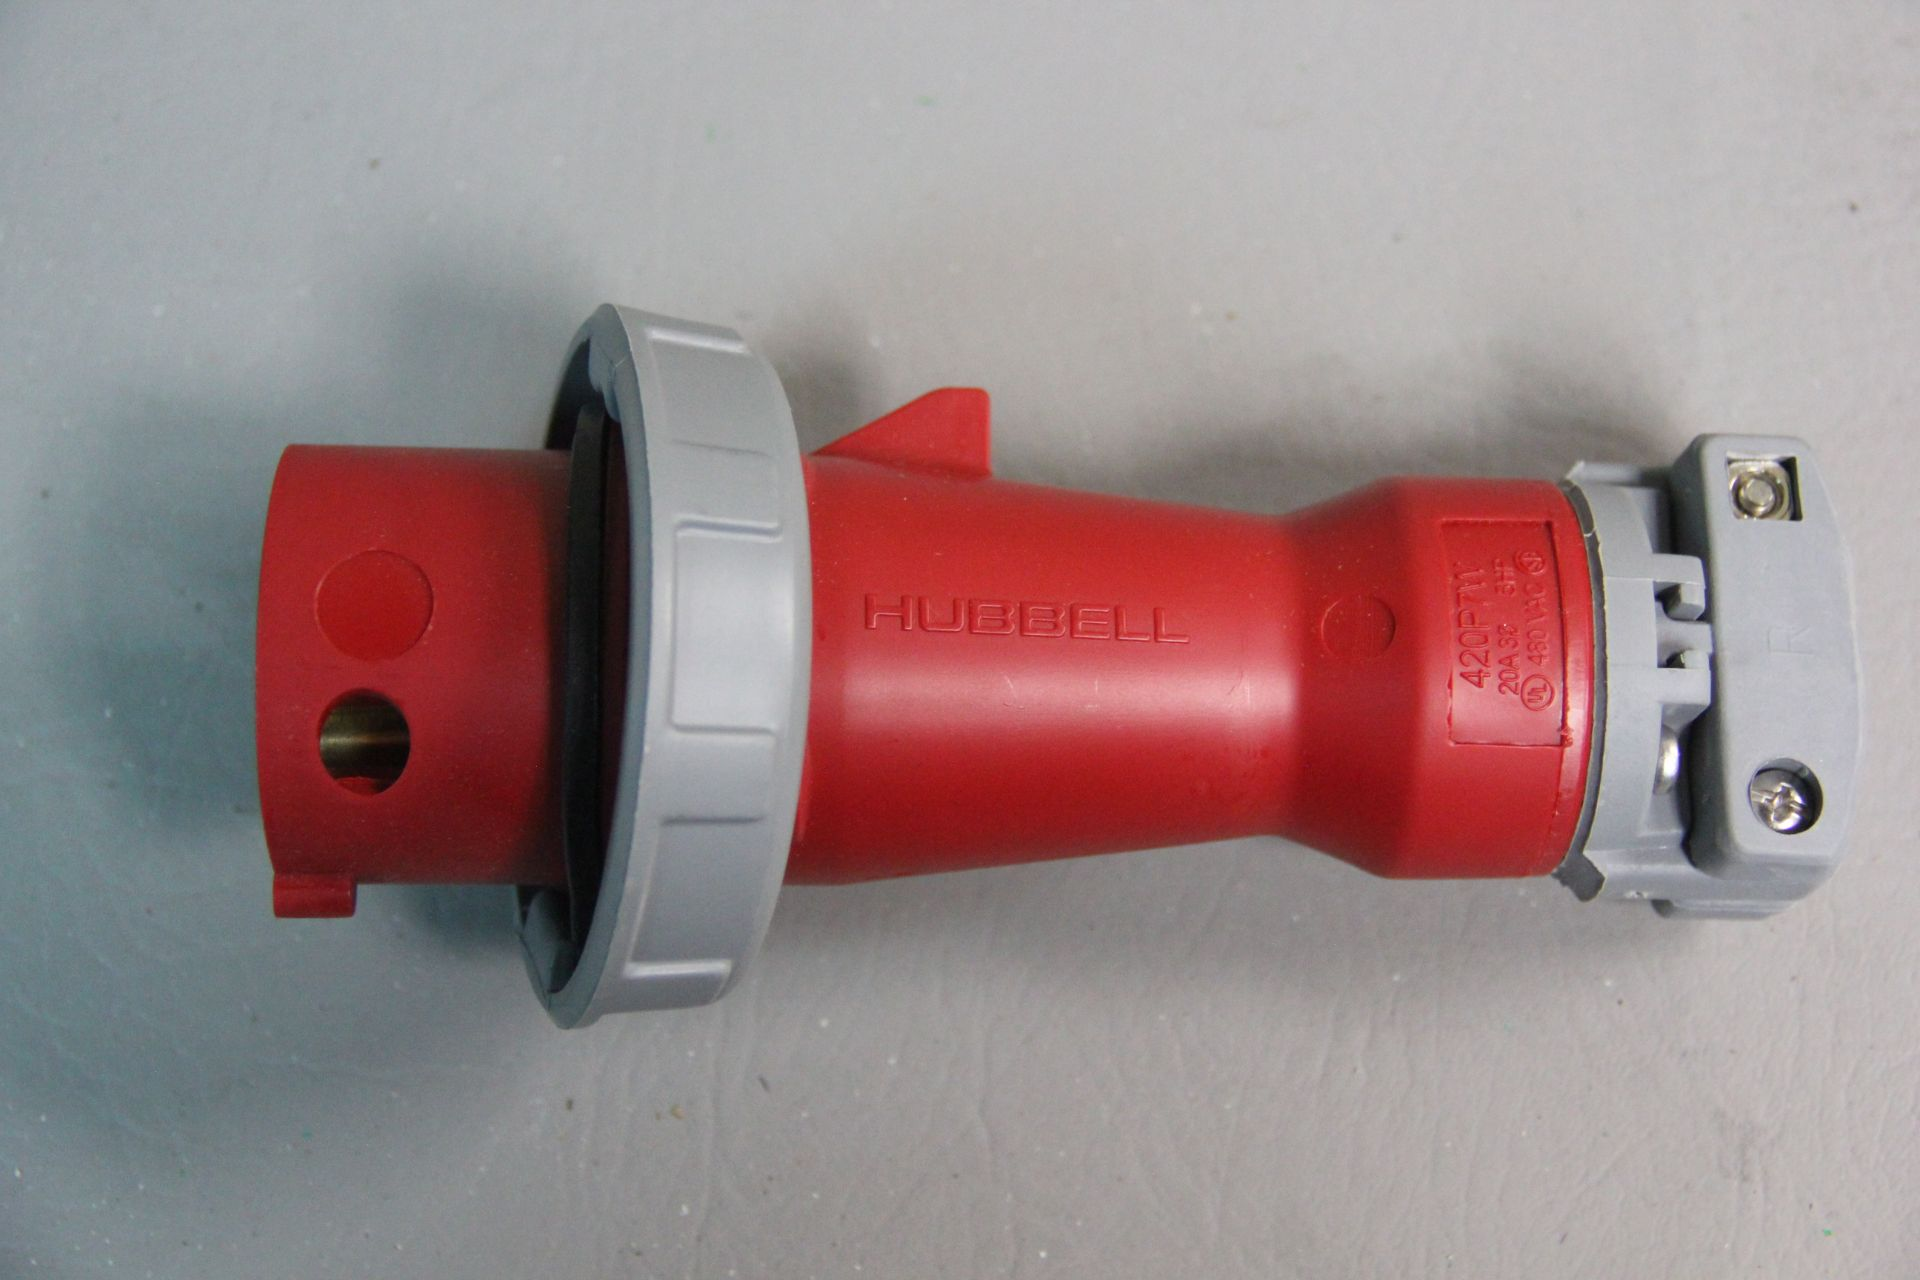 NEW HUBBELL PIN & SLEEVE WATERTIGHT ELECTRICAL PLUG - Image 3 of 4